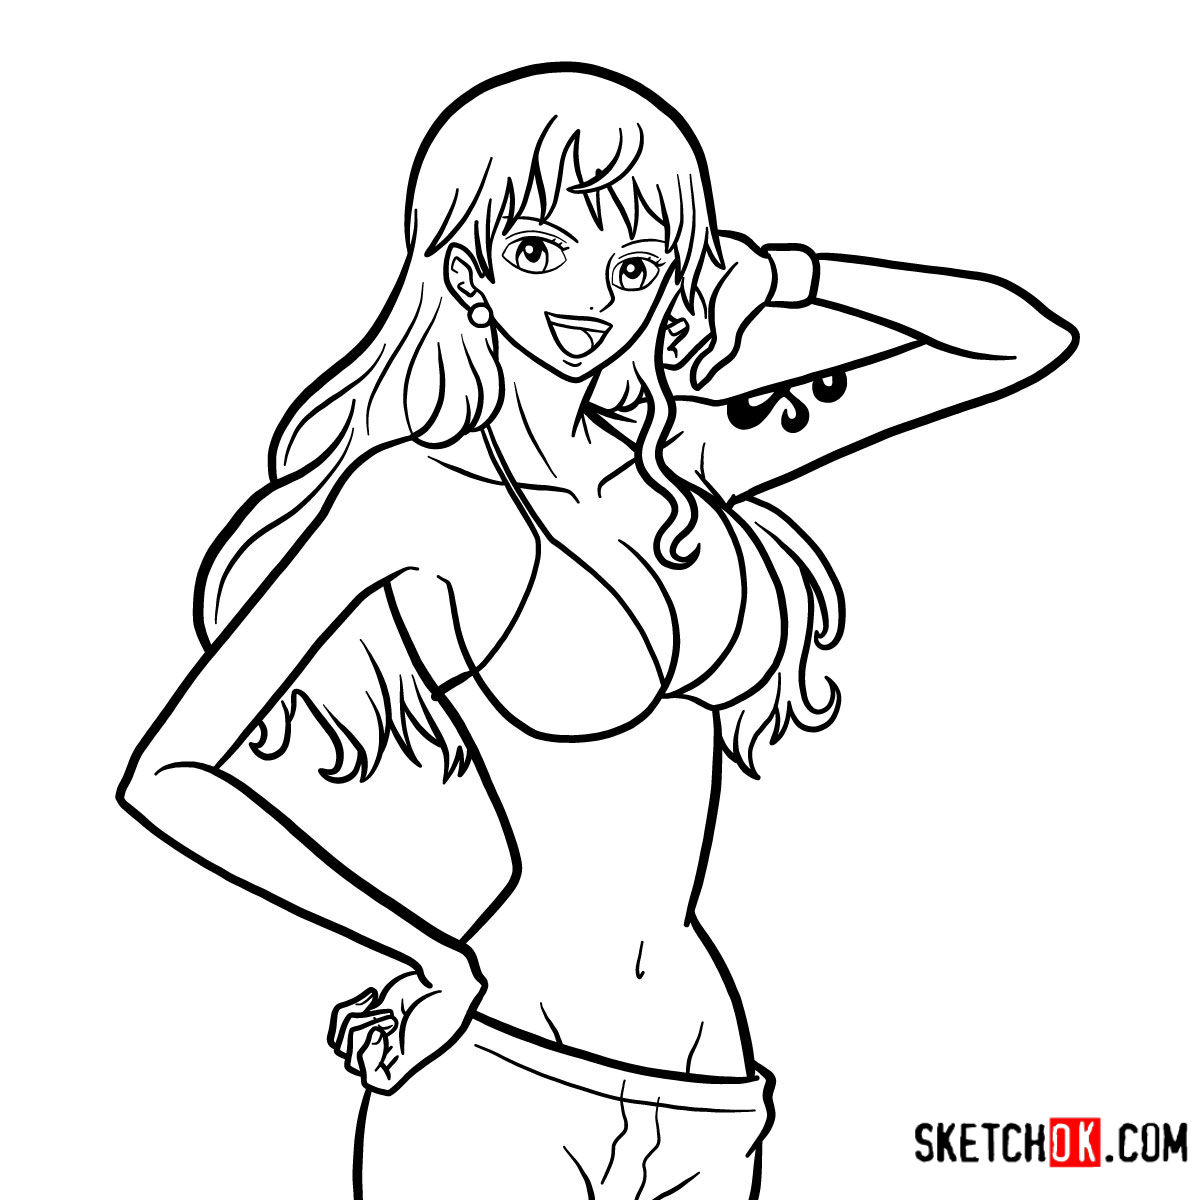 How to draw Nami | One Piece